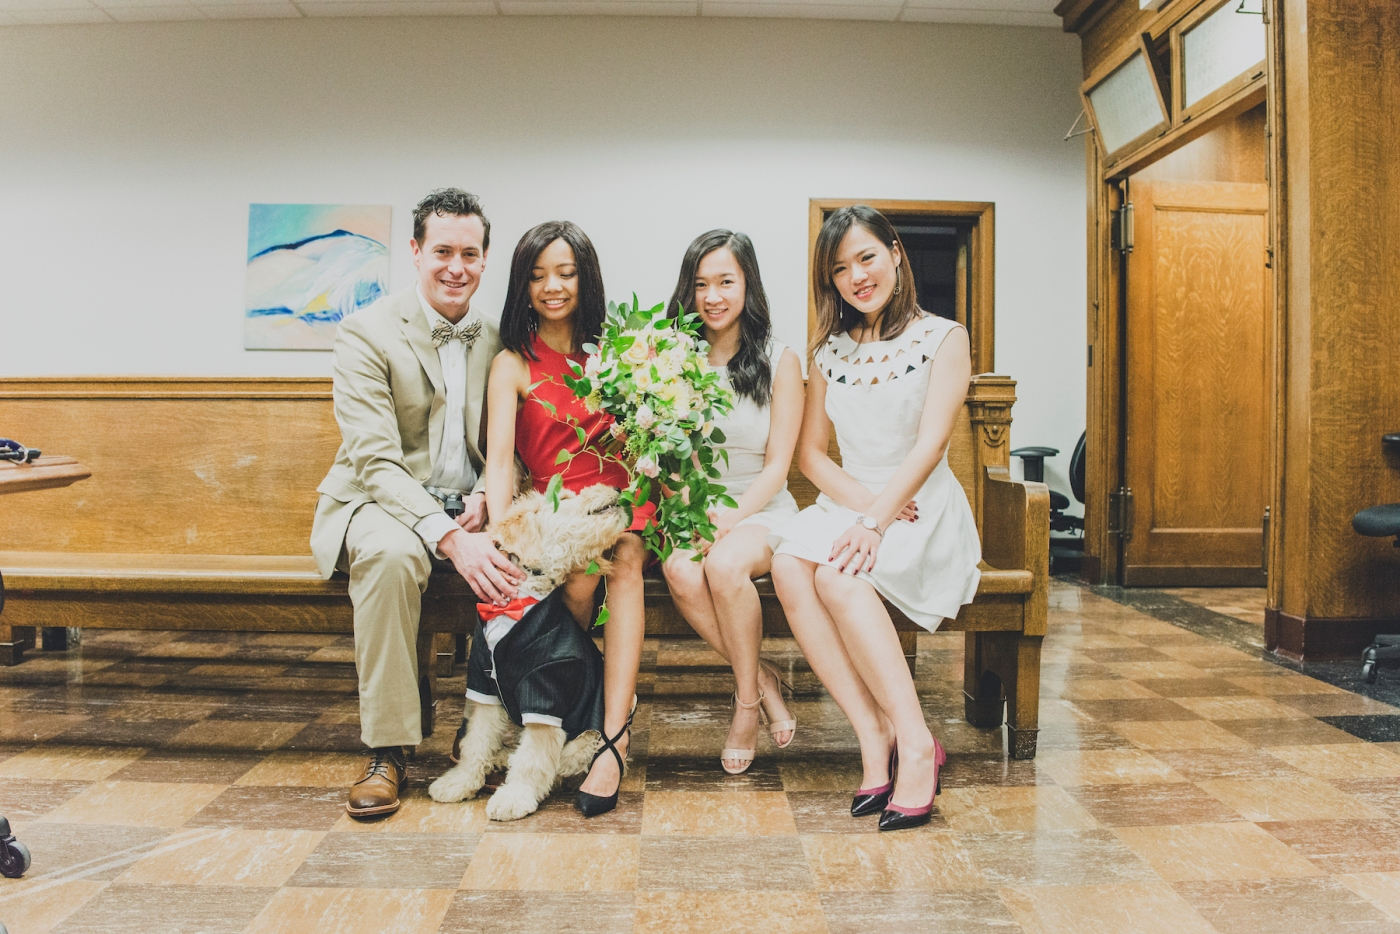 photography_by_jane_speleers_2017_seattle_court_house_wedding-dsc_9007